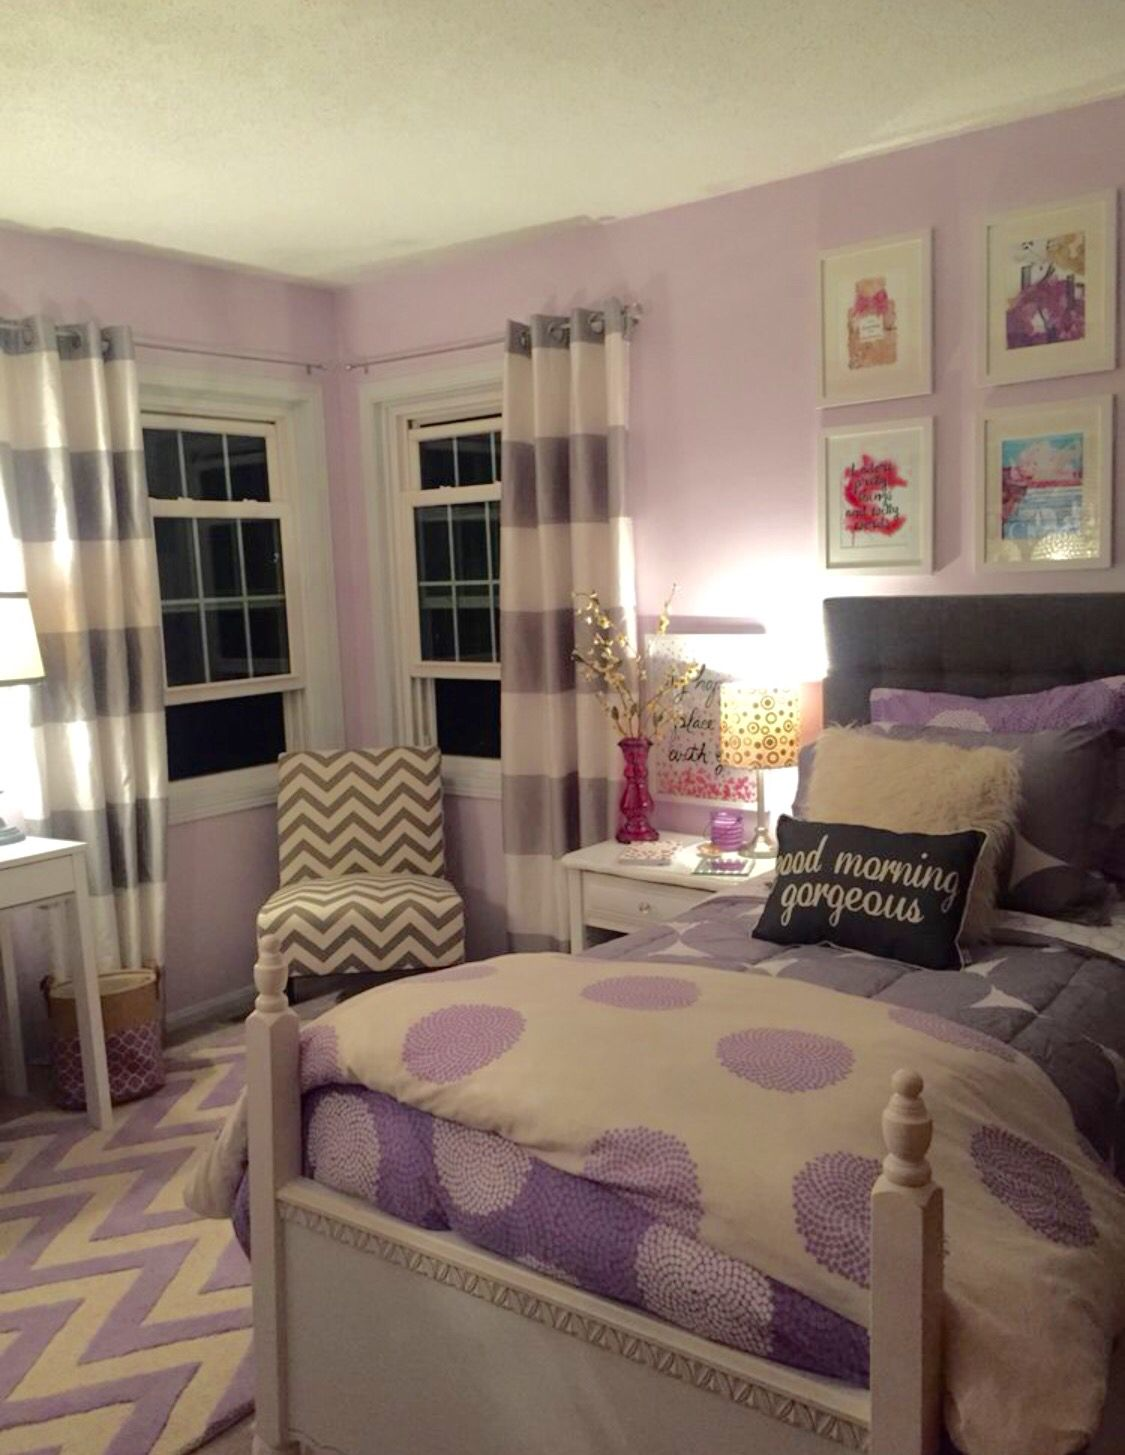 Teen Girl Room Design: Pin On Room Makeovers